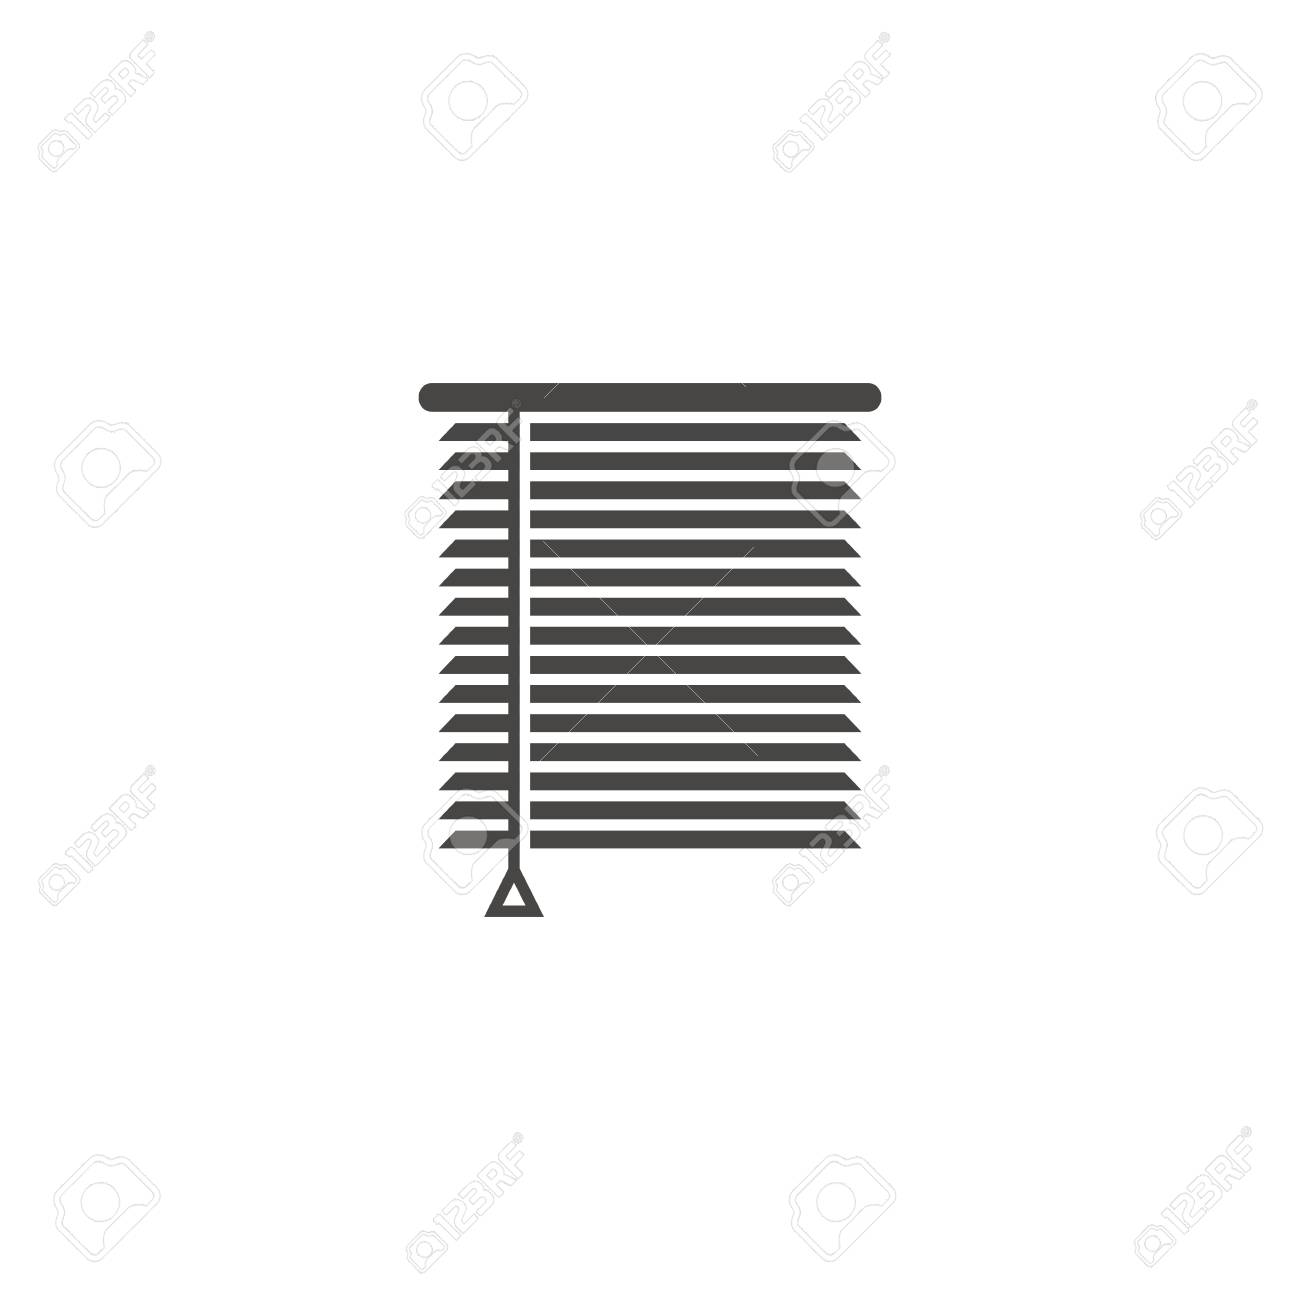 Louvers sign icon. Window blinds or jalousie symbol - 108329895